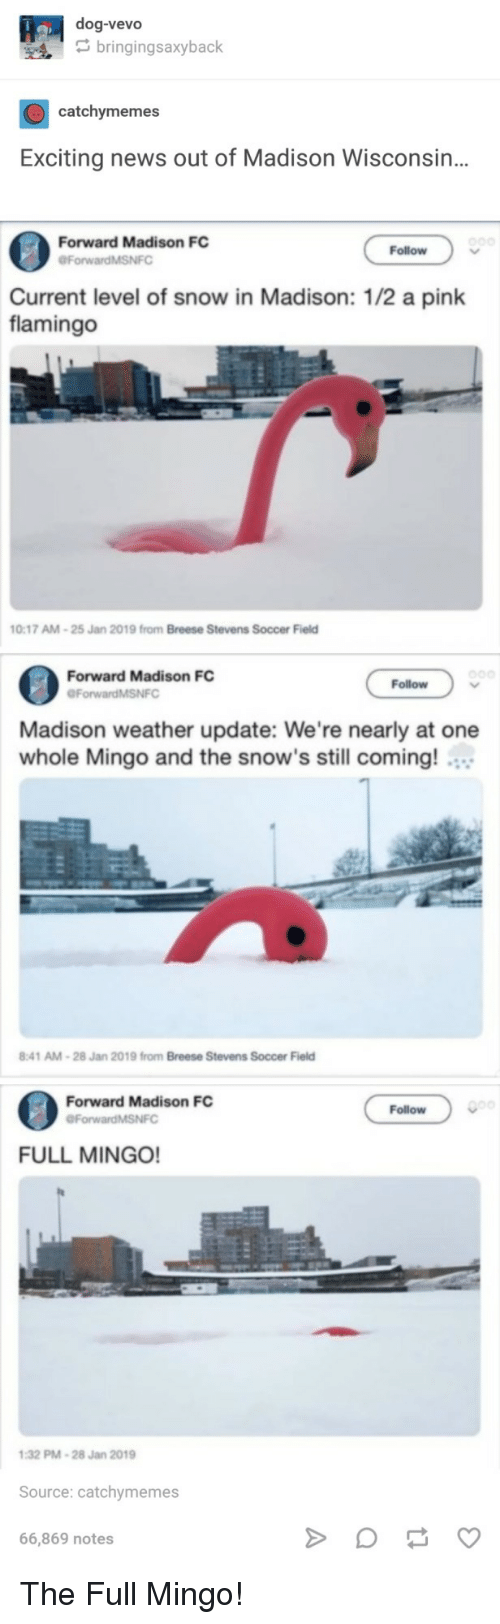 Vevo: dog-vevo  bringingsaxyback  catchymemes  Exciting news out of Madison Wisconsin..  Forward Madison FC  ForwardMSNFO  Follow  Current level of snow in Madison: 1/2 a pink  flamingo  0:17 AM-25 Jan  2019 from Breese Stevens  Soccer Field  Forward Madison FC  Follow  Madison weather update: We're nearly at one  whole Mingo and the snow's still coming!  :41 AM-28 Jan 2019 from Breese Stevens Soccer Field  Forward Madison FC  Follow  ForwardMSNFC  FULL MINGO!  32 PM-28 Jan 2019  Source: catchymemes  66,869 notes The Full Mingo!